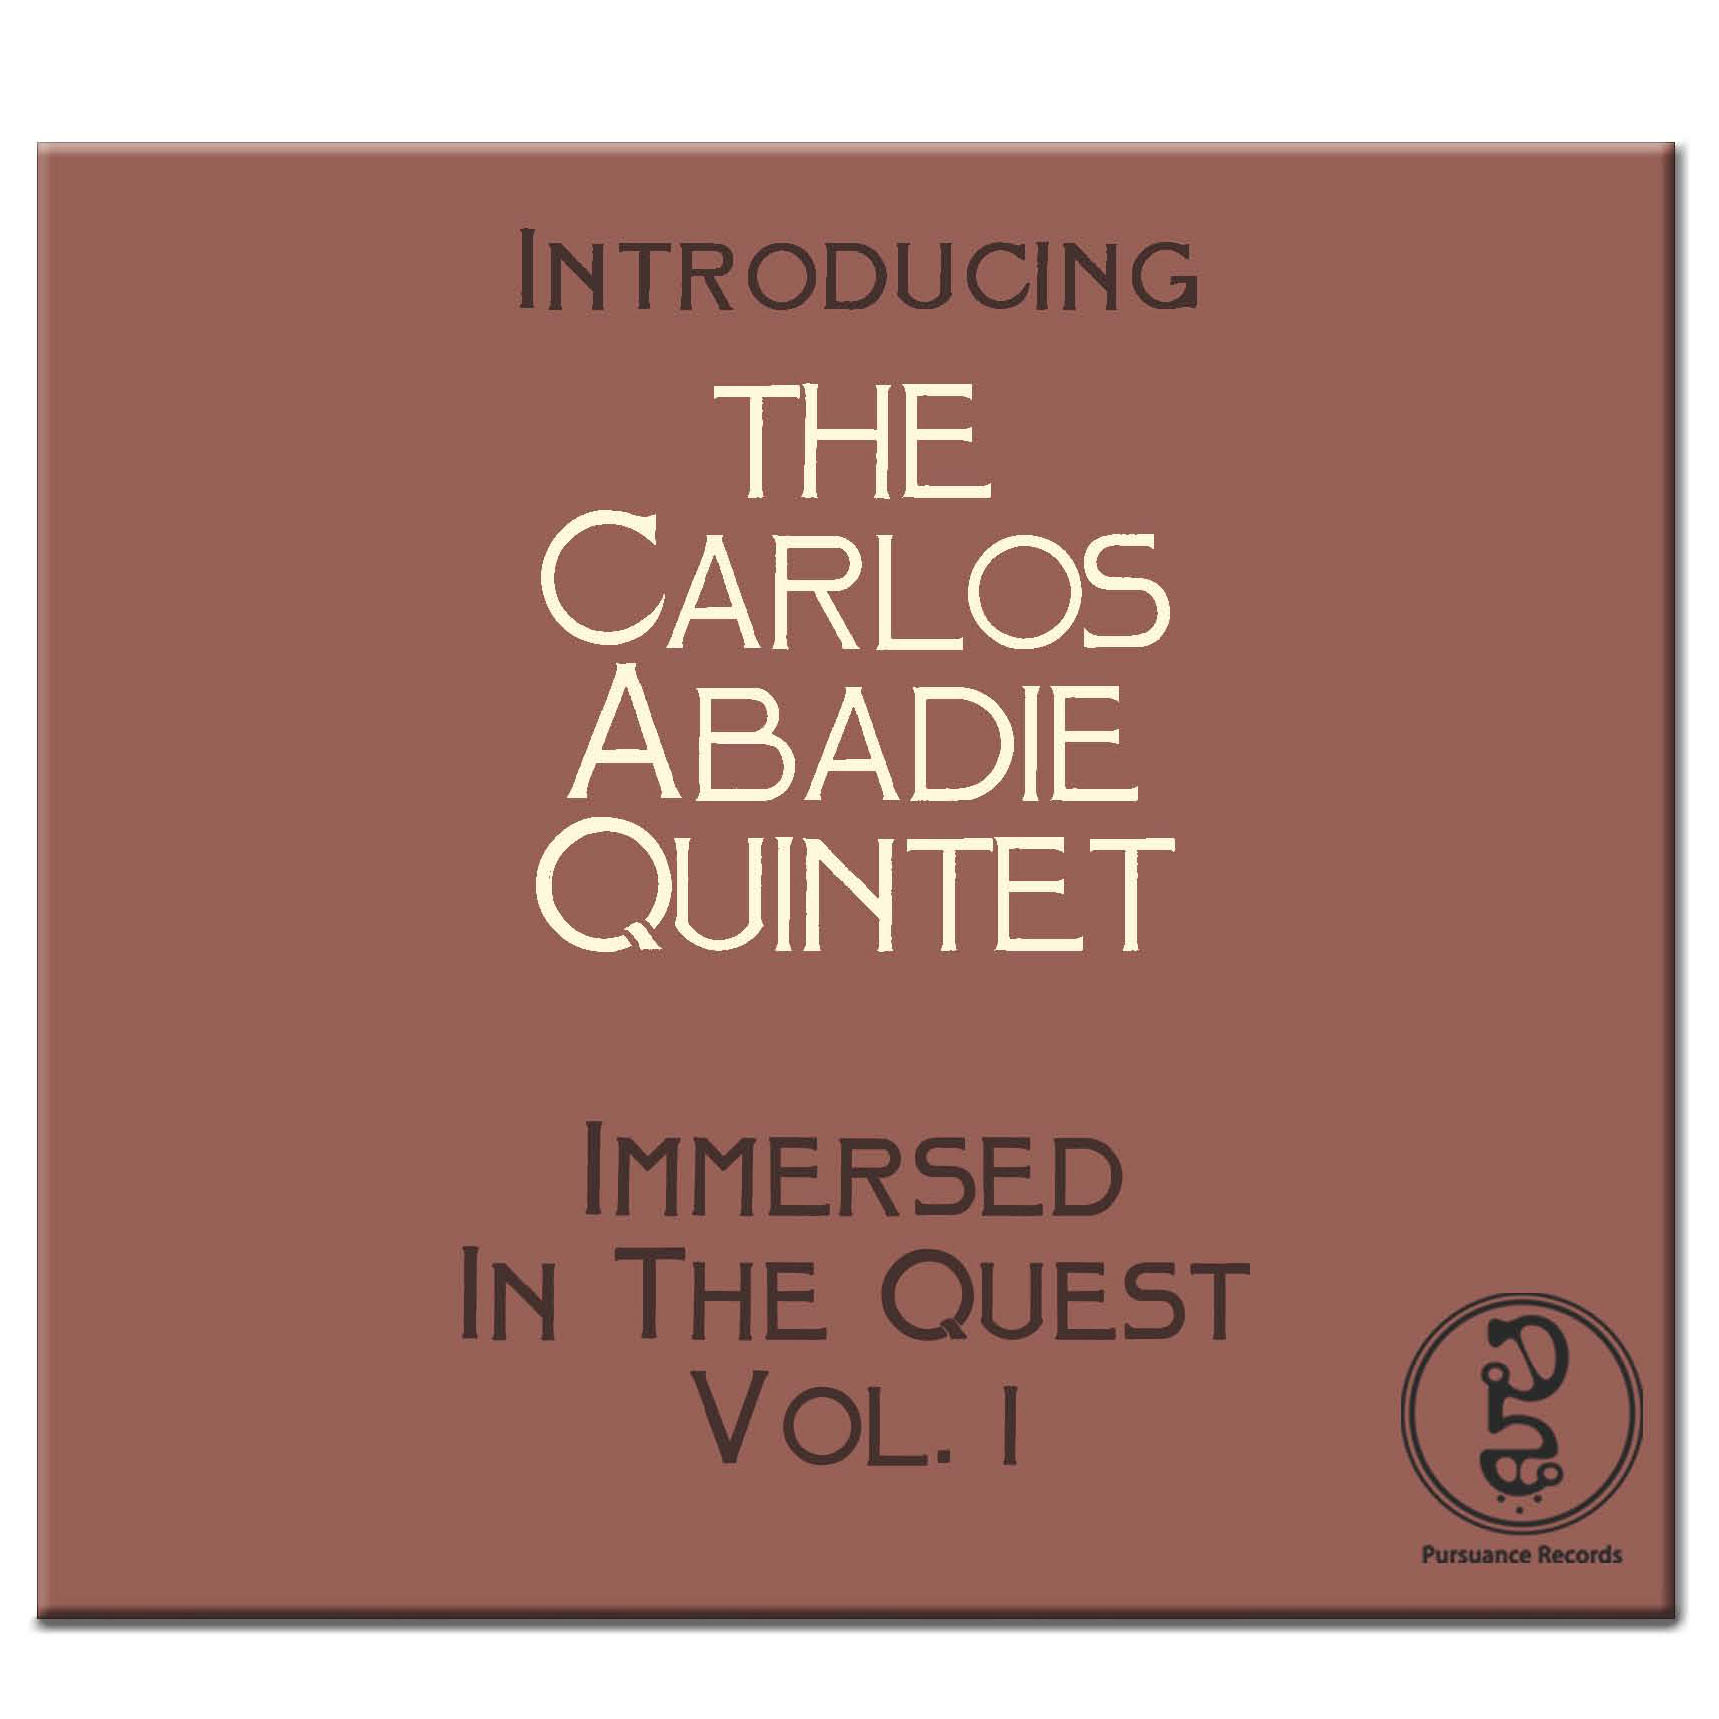 Carlos Abadie Quintet – Immersed In The Quest ~ Vol. 1